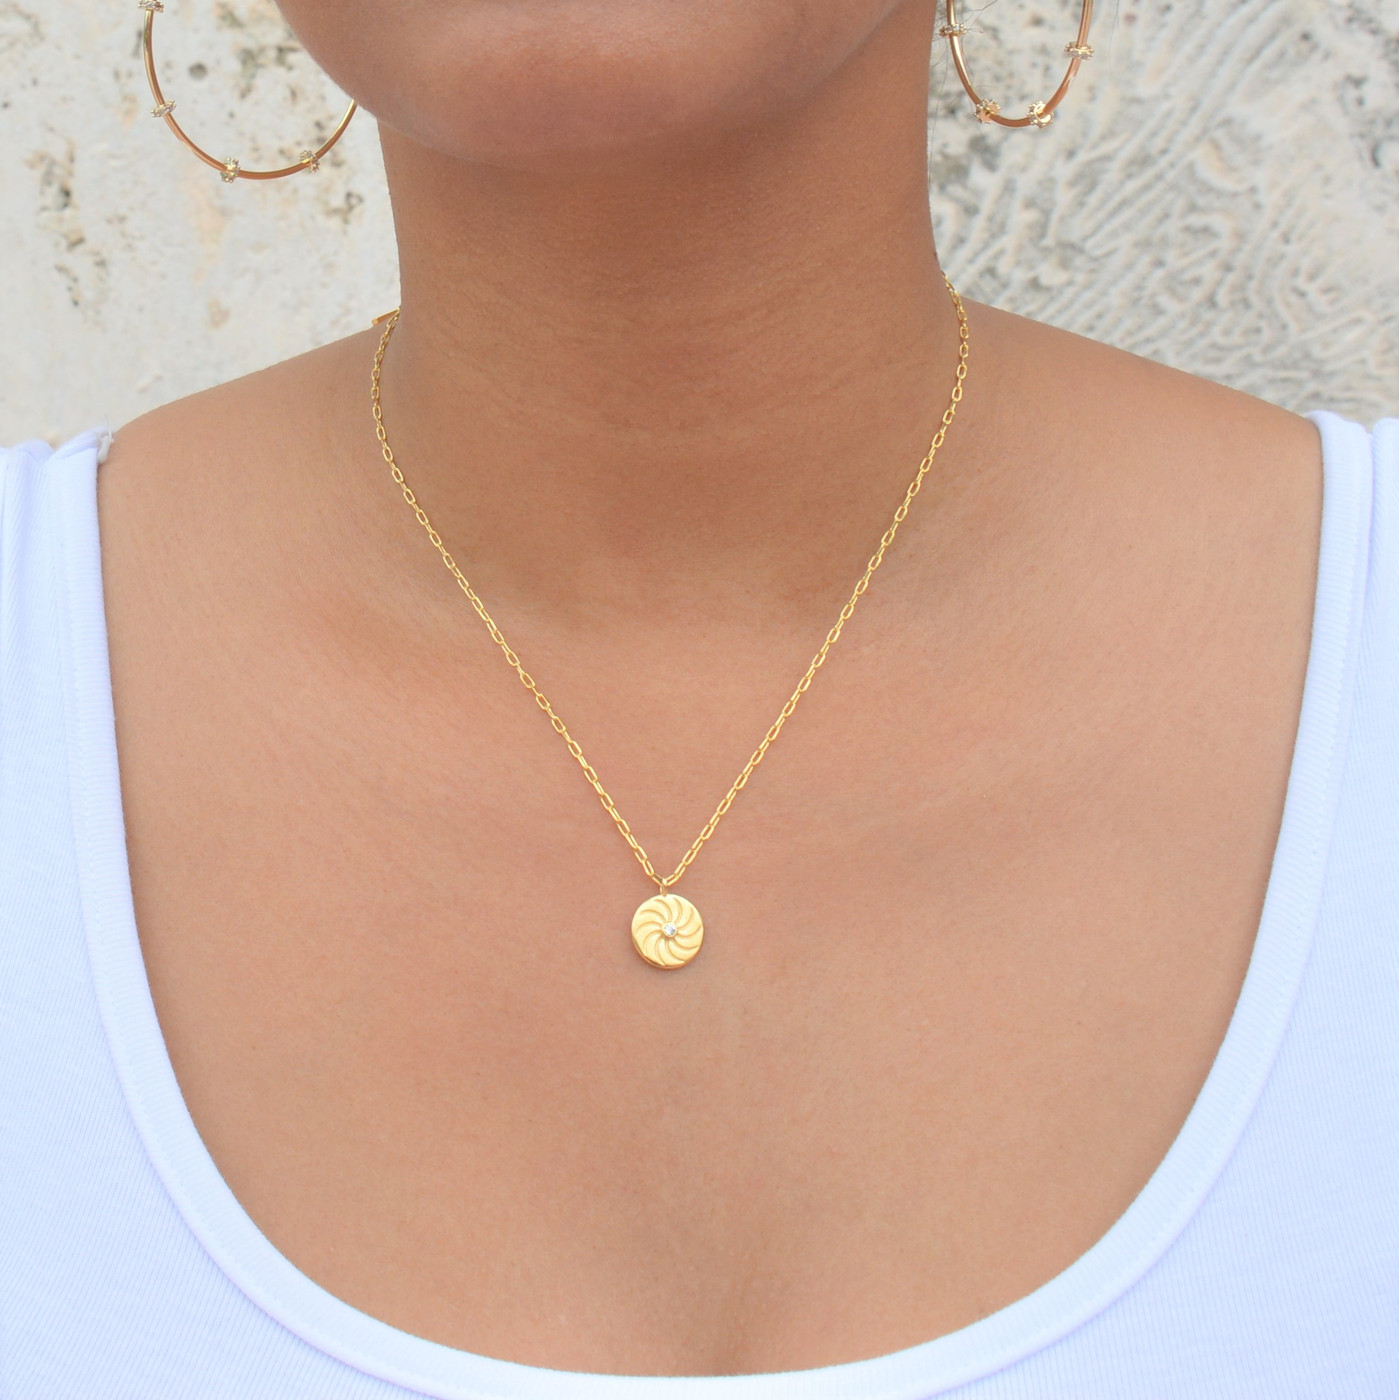 Sunshine Coin Medallion Necklace